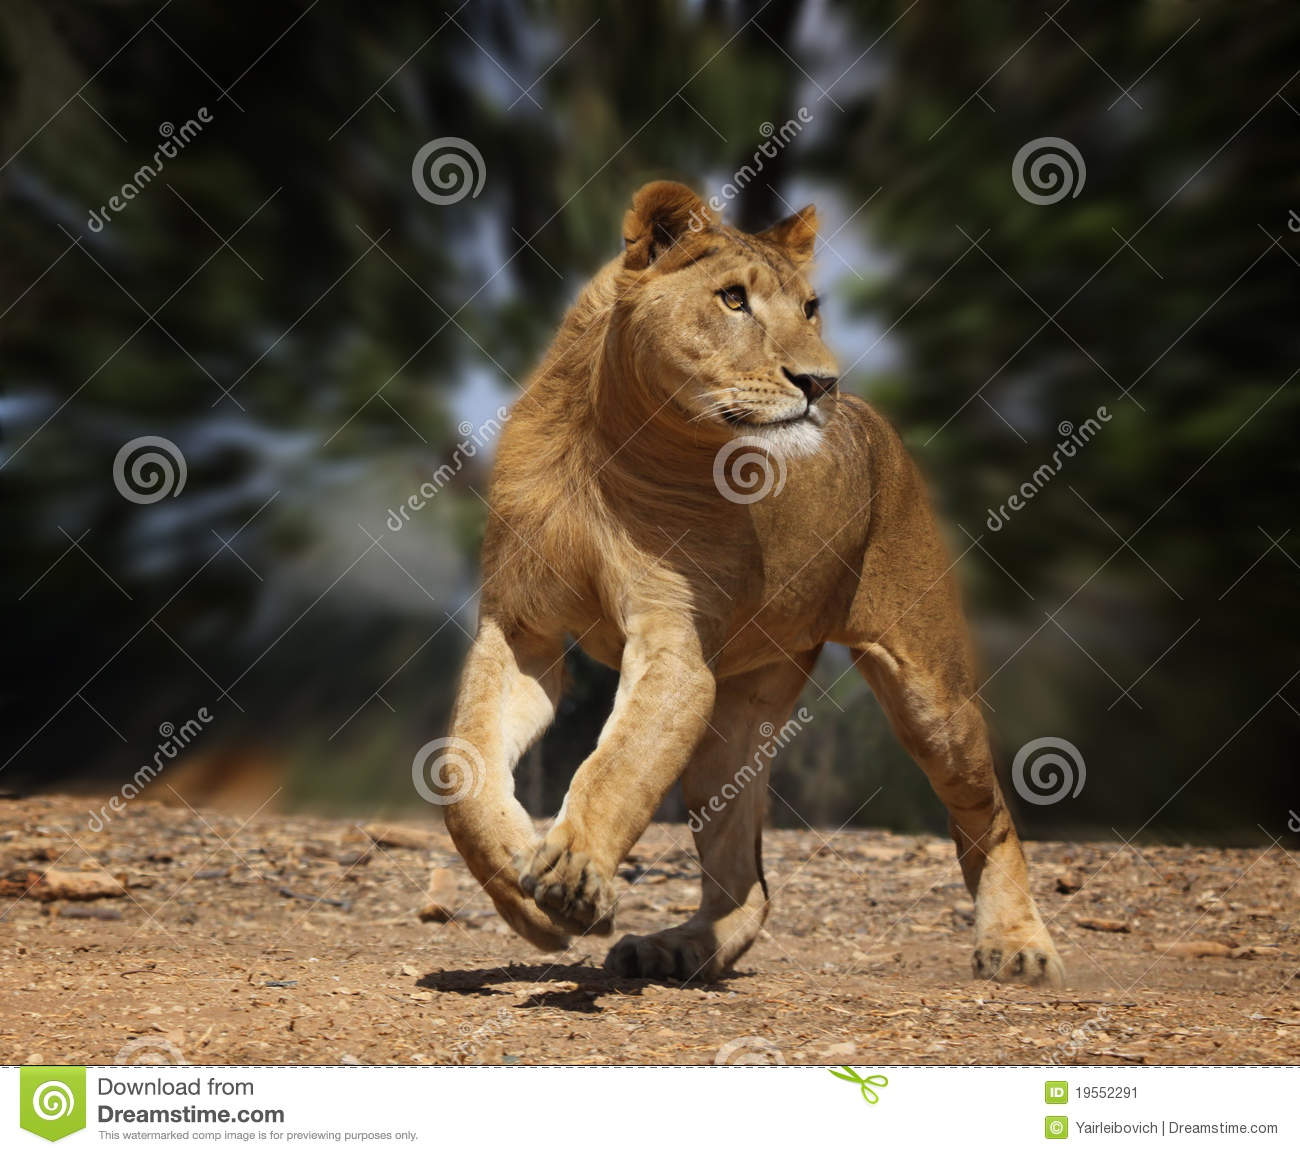 Big W Runners Running Lion Stock Image Image Of Lion Carnivore Beast